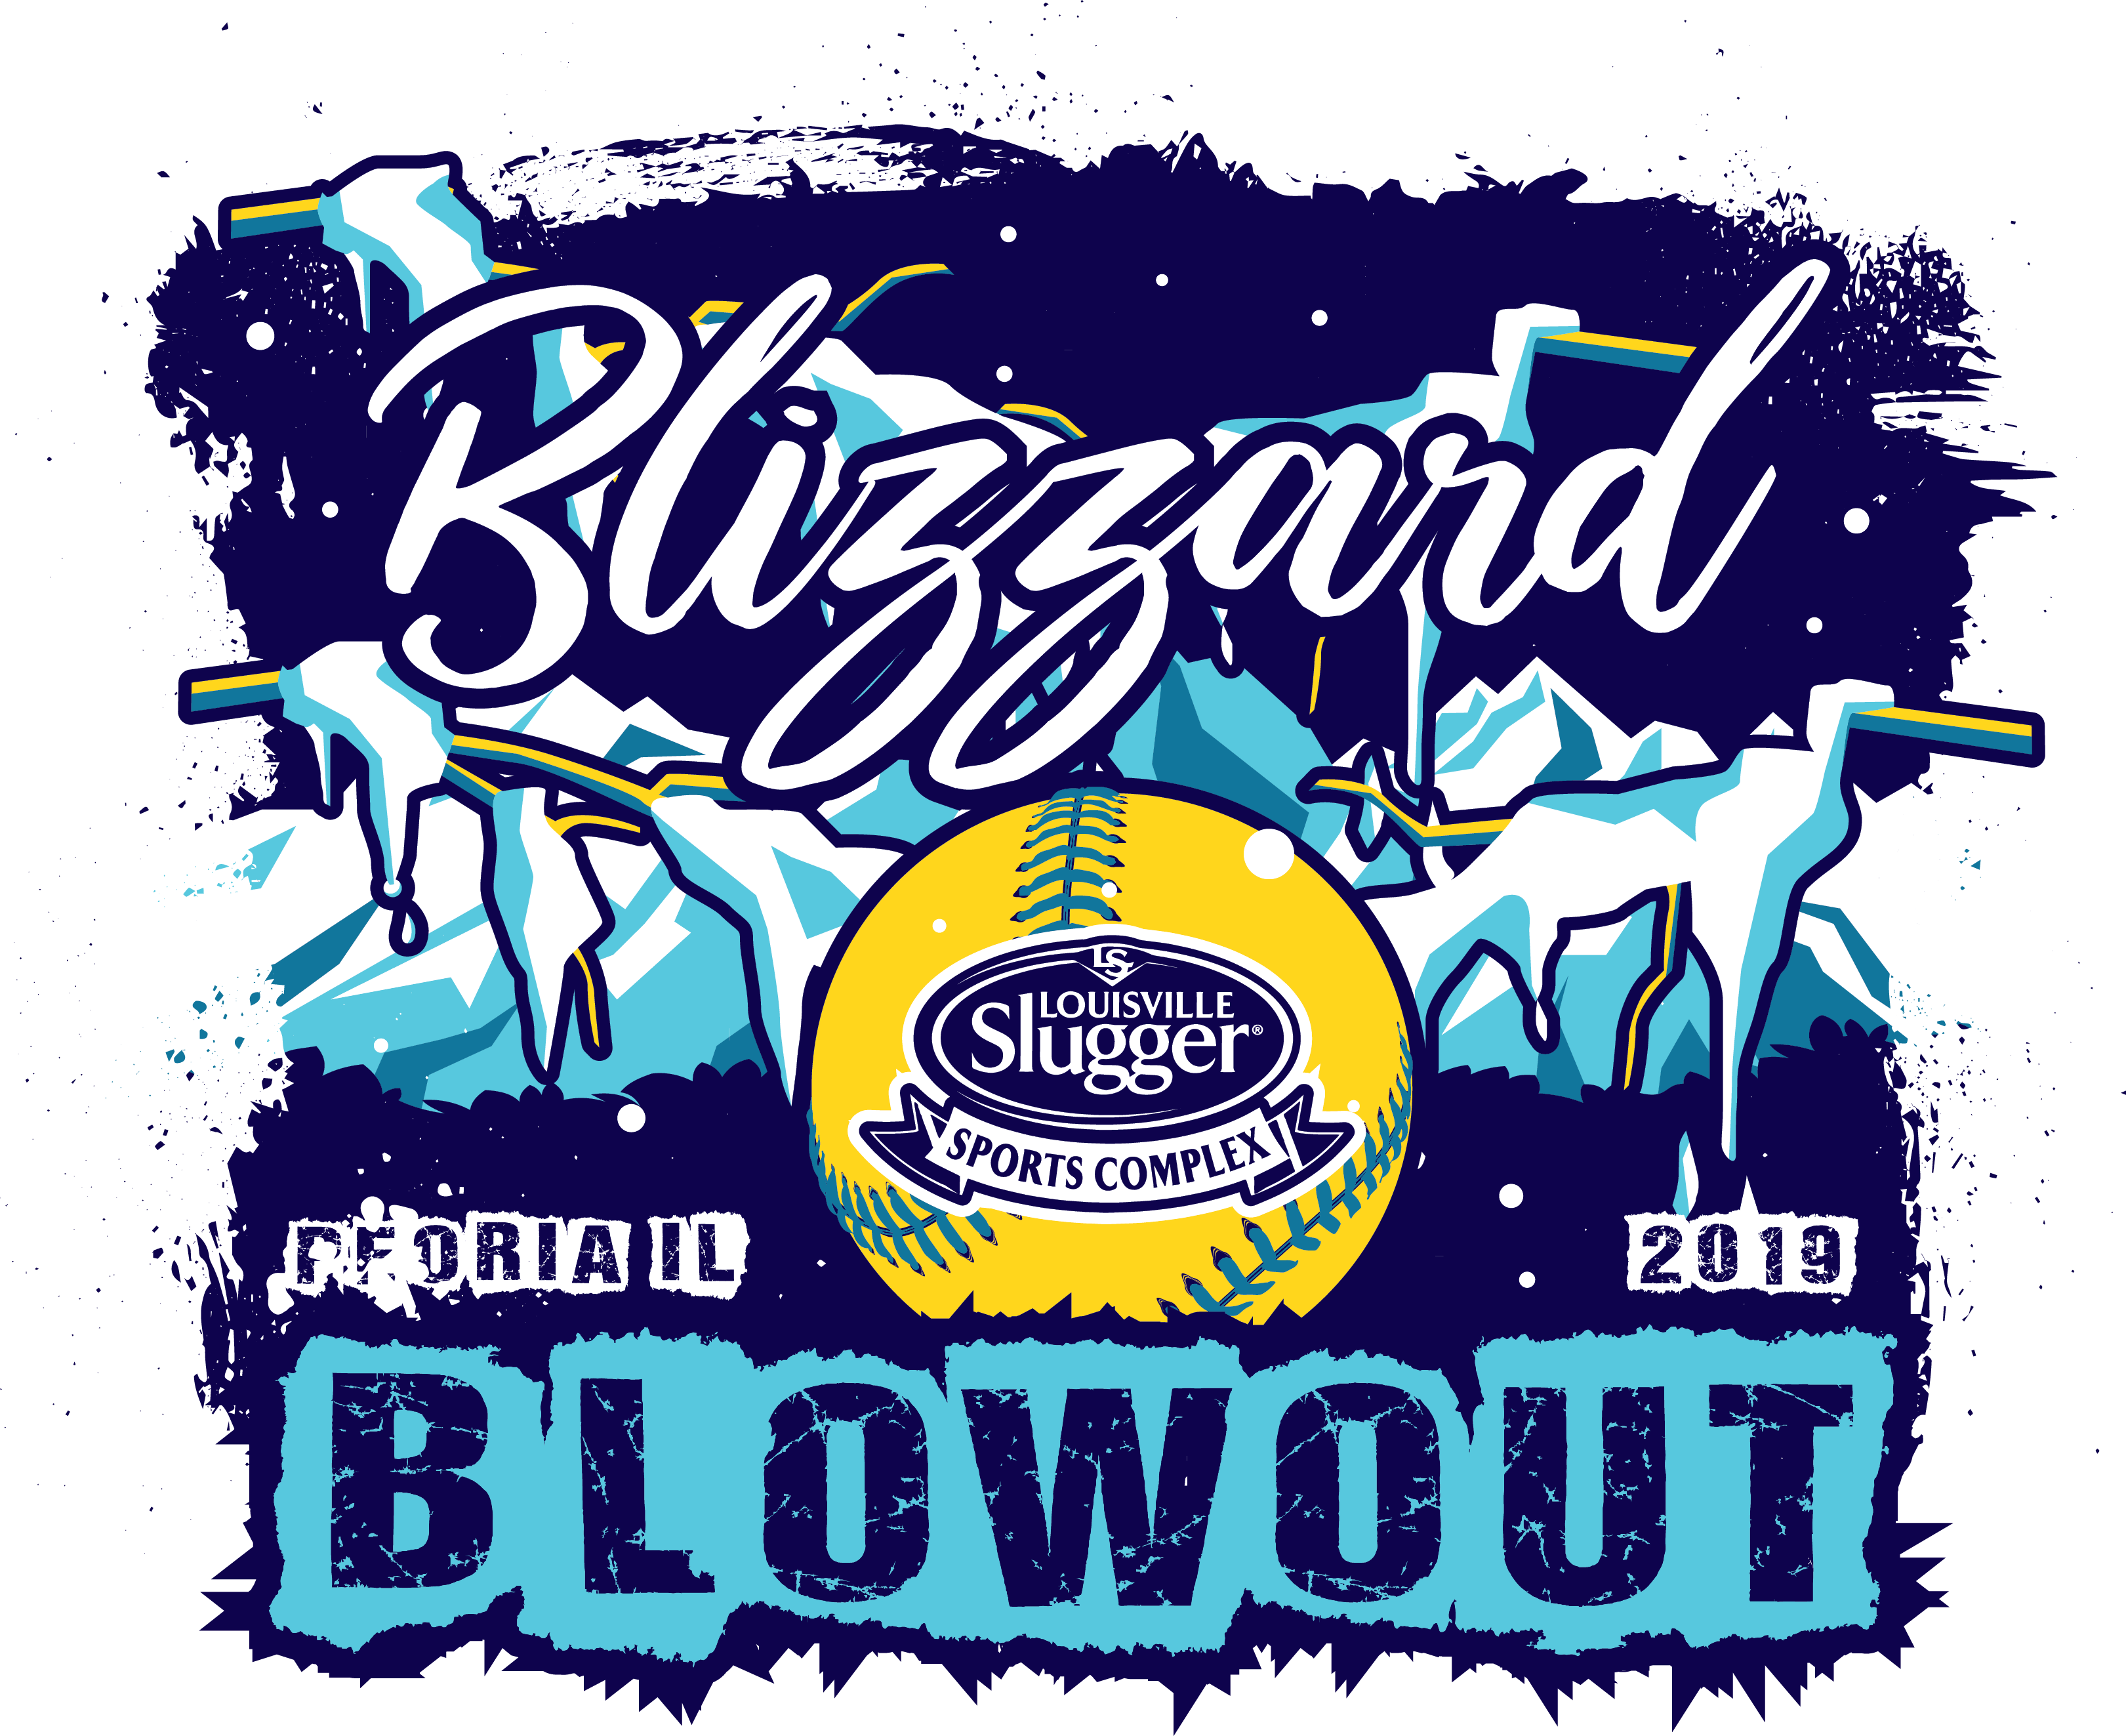 Blizzard Blowout